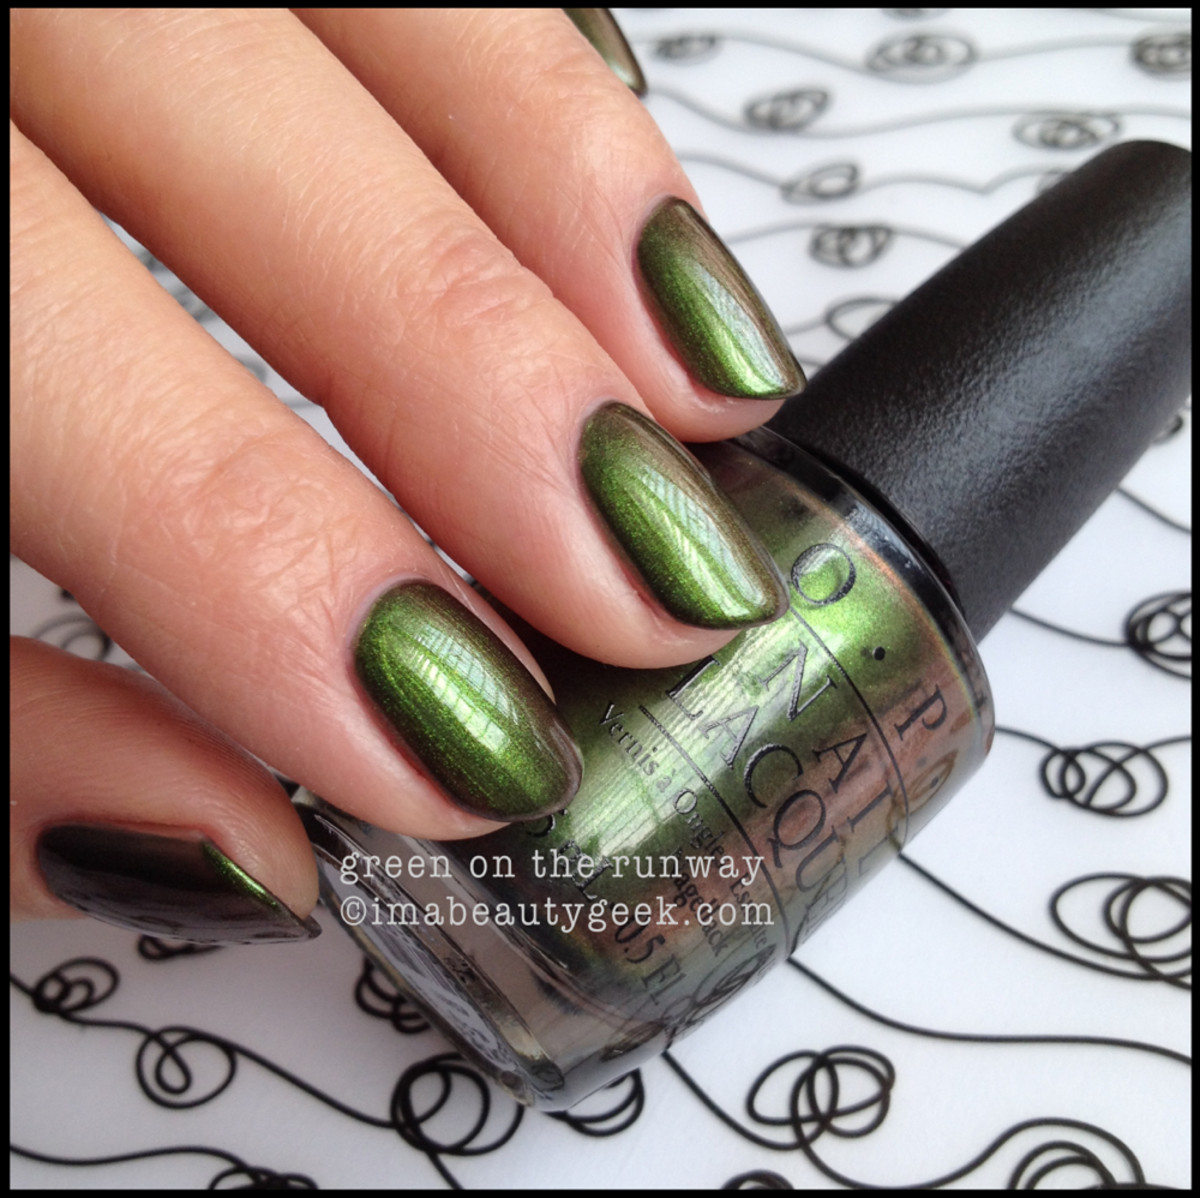 OPI Green on the Runway OPI Coca Cola 2014